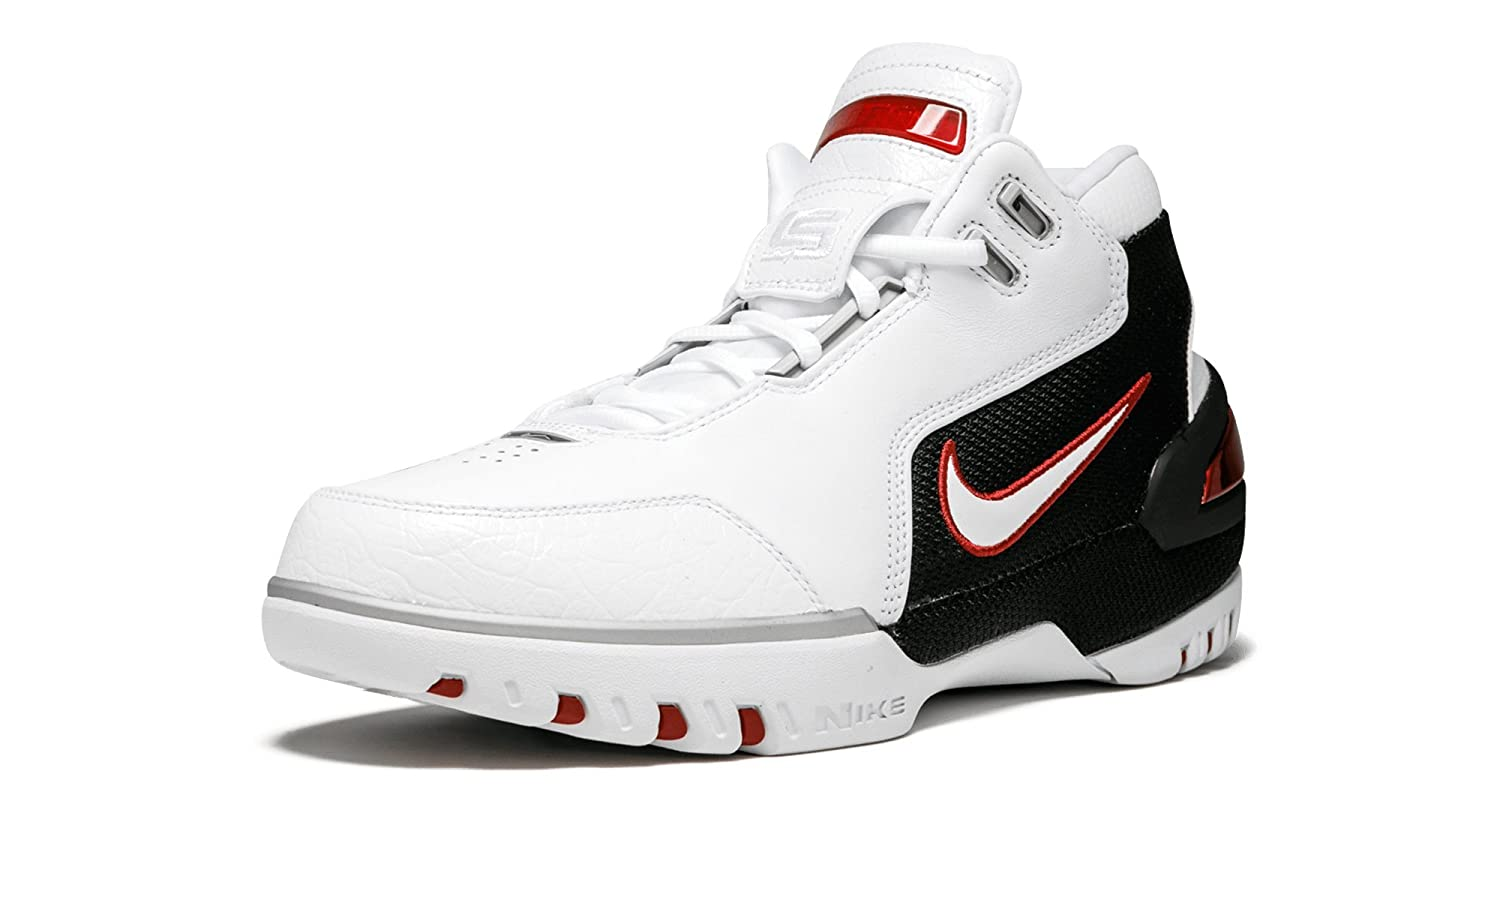 [NIKE - ナイキ] AIR ZOOM GENERATION QS 'FIRST GAME' - AJ4204-101 - SIZE 11.5 (メンズ) B074572F67